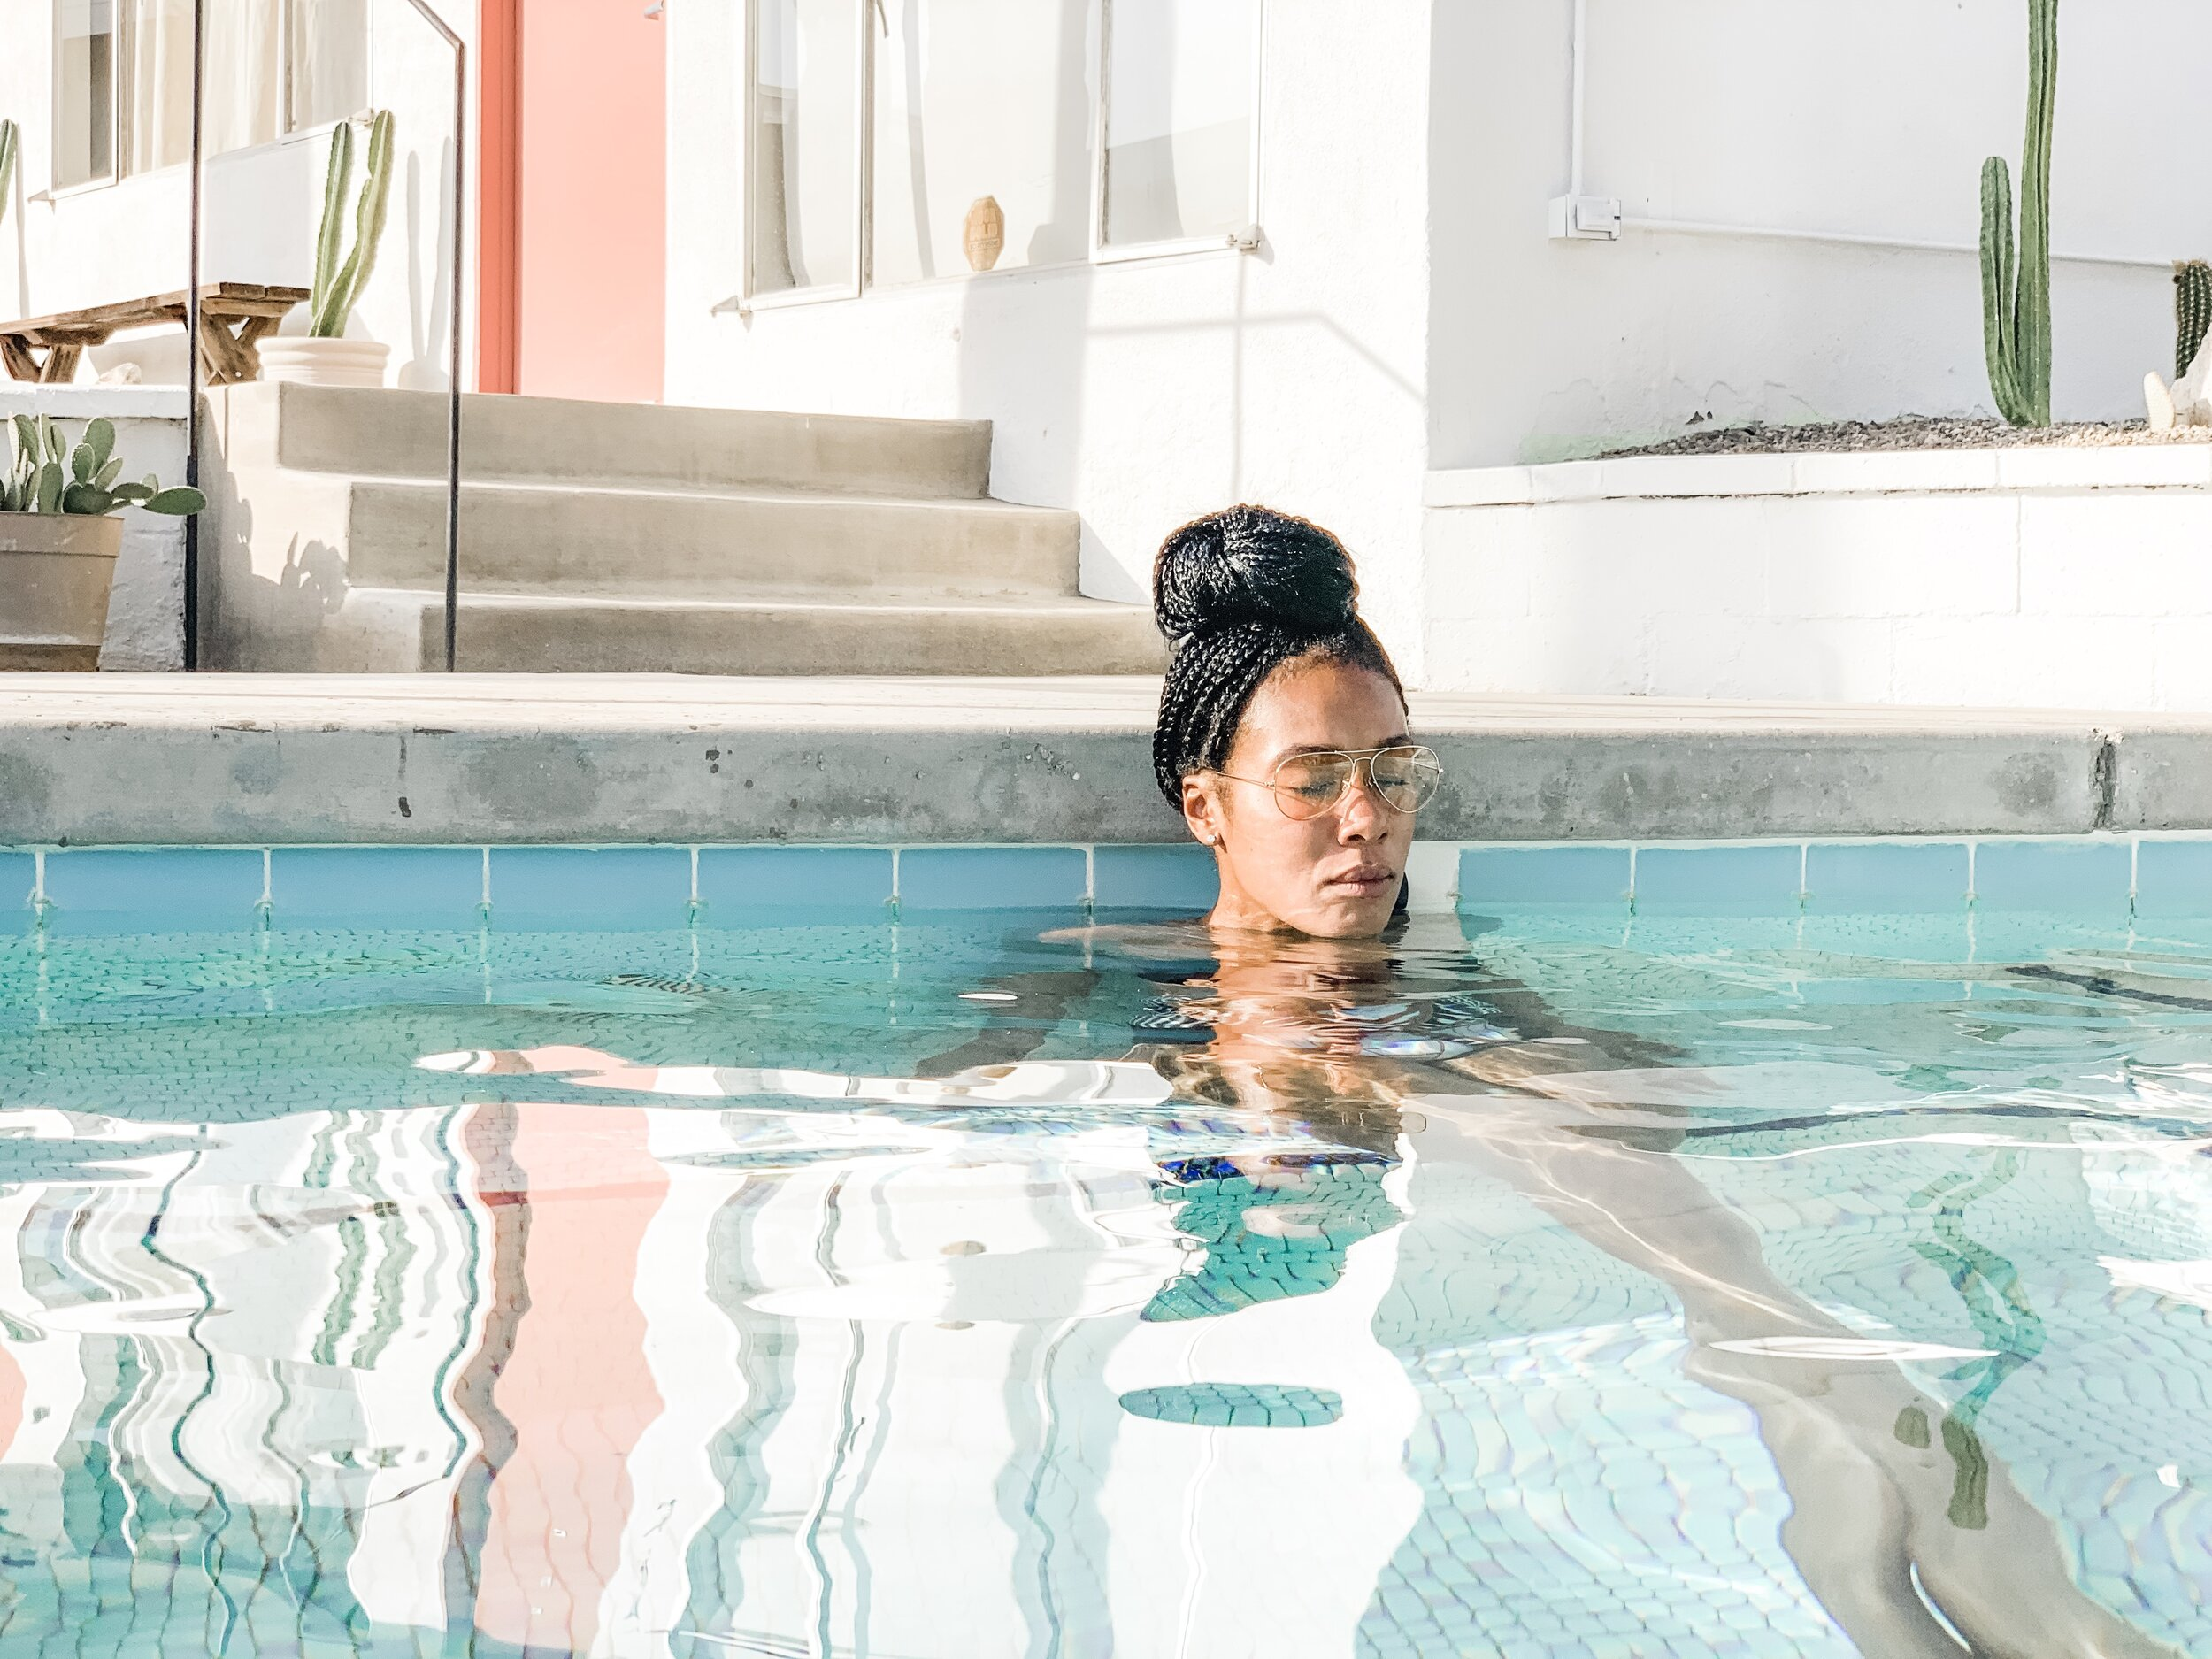 Spa Treatments - Our menu selections are a representation of ancient traditions that renew, revive, and relax the mind, body, and sprit to return to balance.We use only organic, sustainable, high-quality Ayurvedic products.